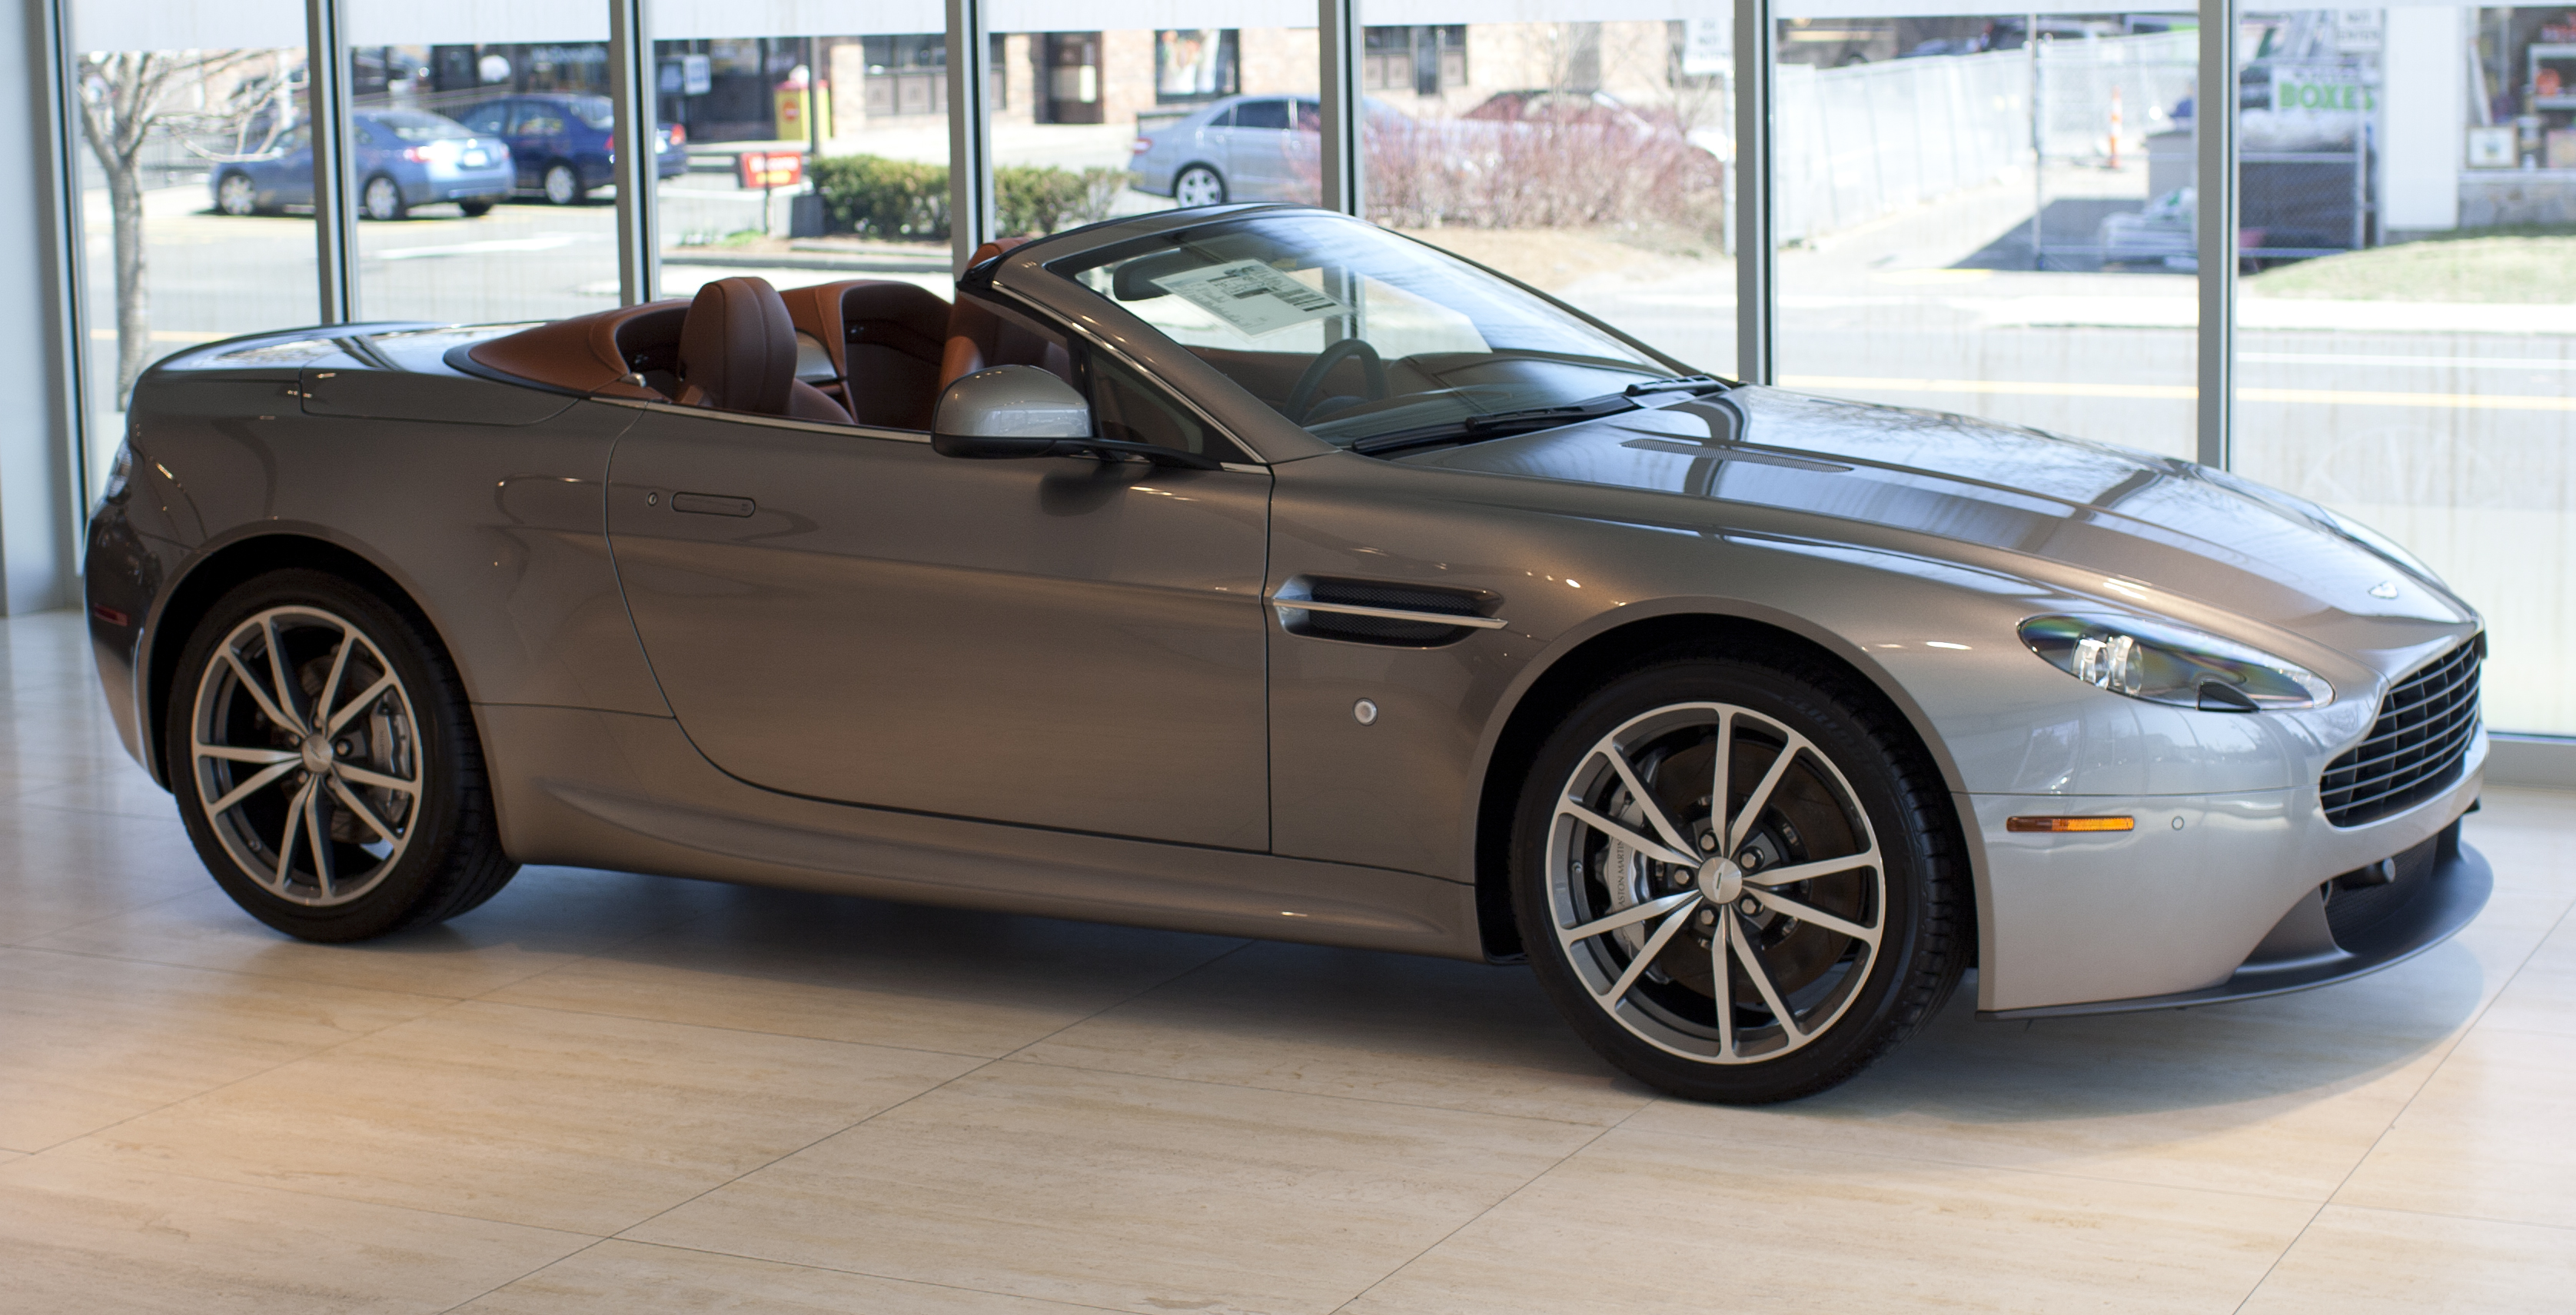 file:2013 aston martin v8 vantage roadster fr - wikimedia commons